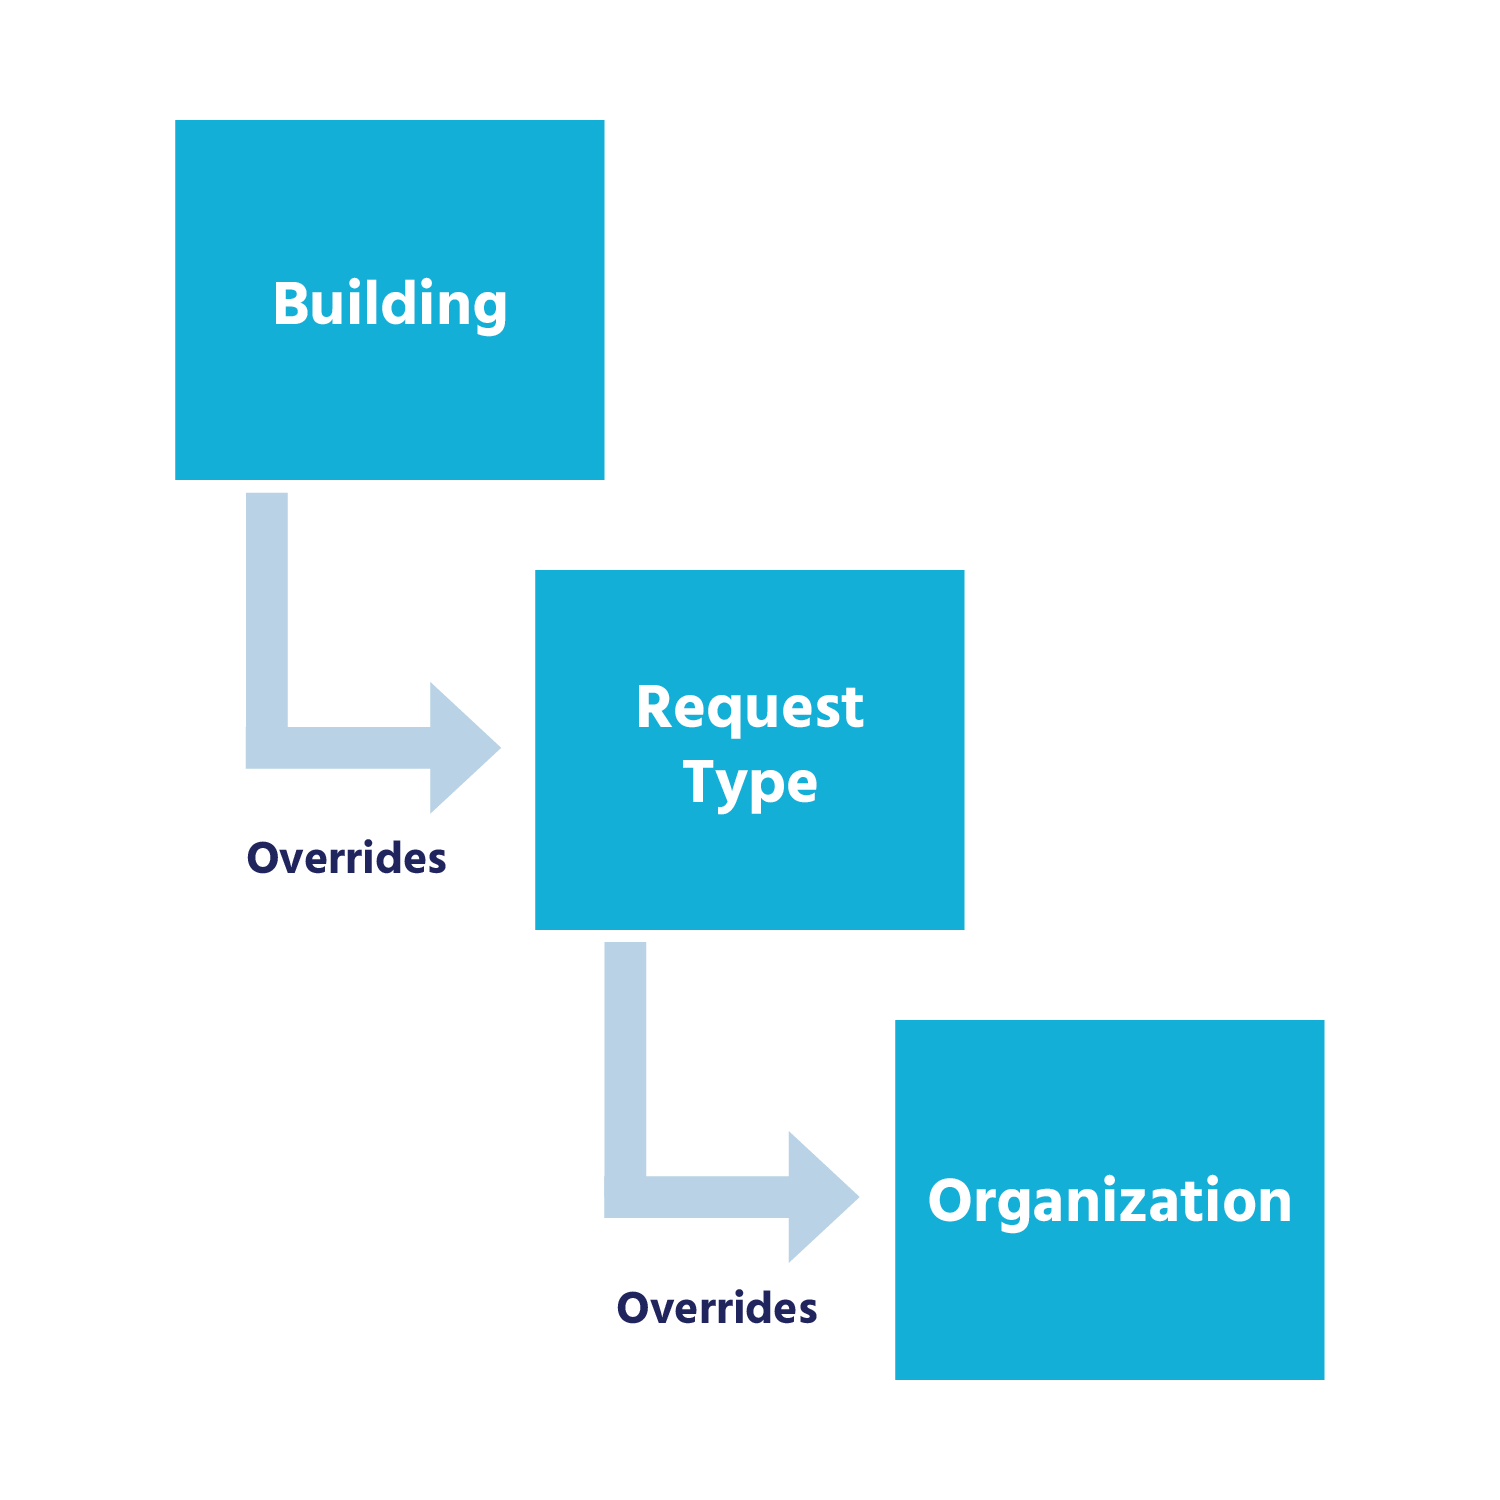 building overrides request type, which then overrides organization